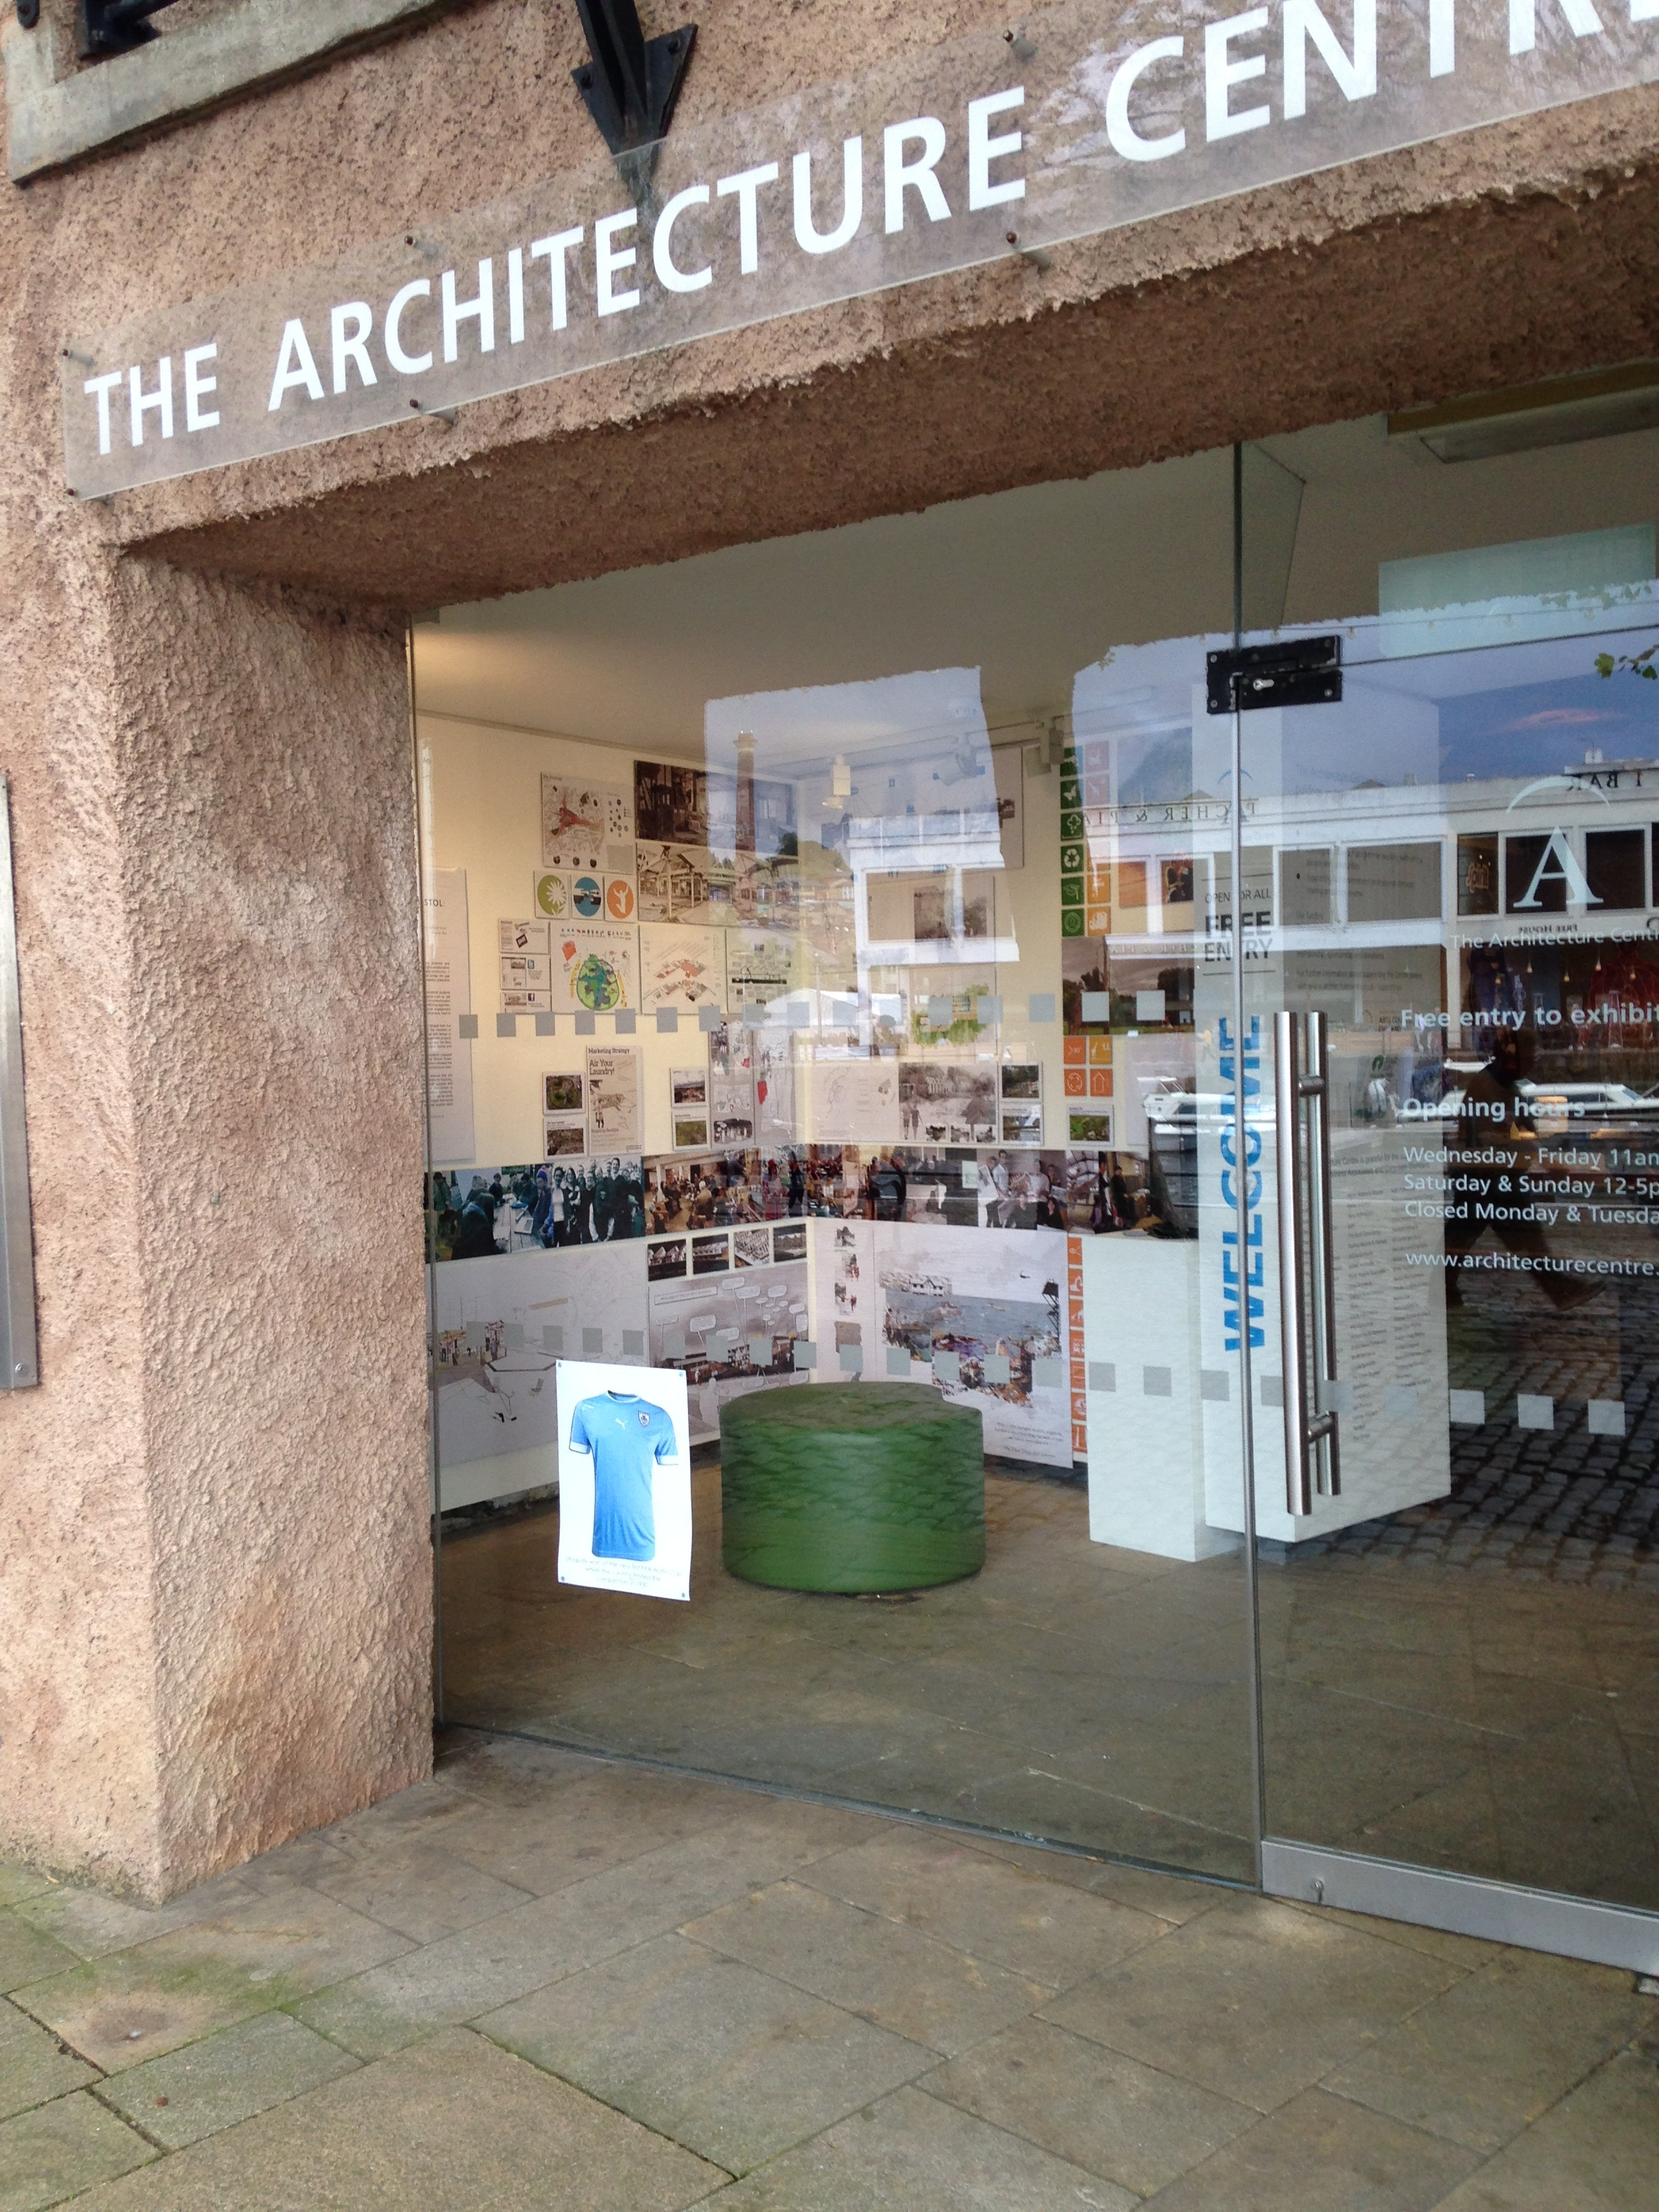 MArch Live Projects displayed at The Architecture Centre, Bristol.